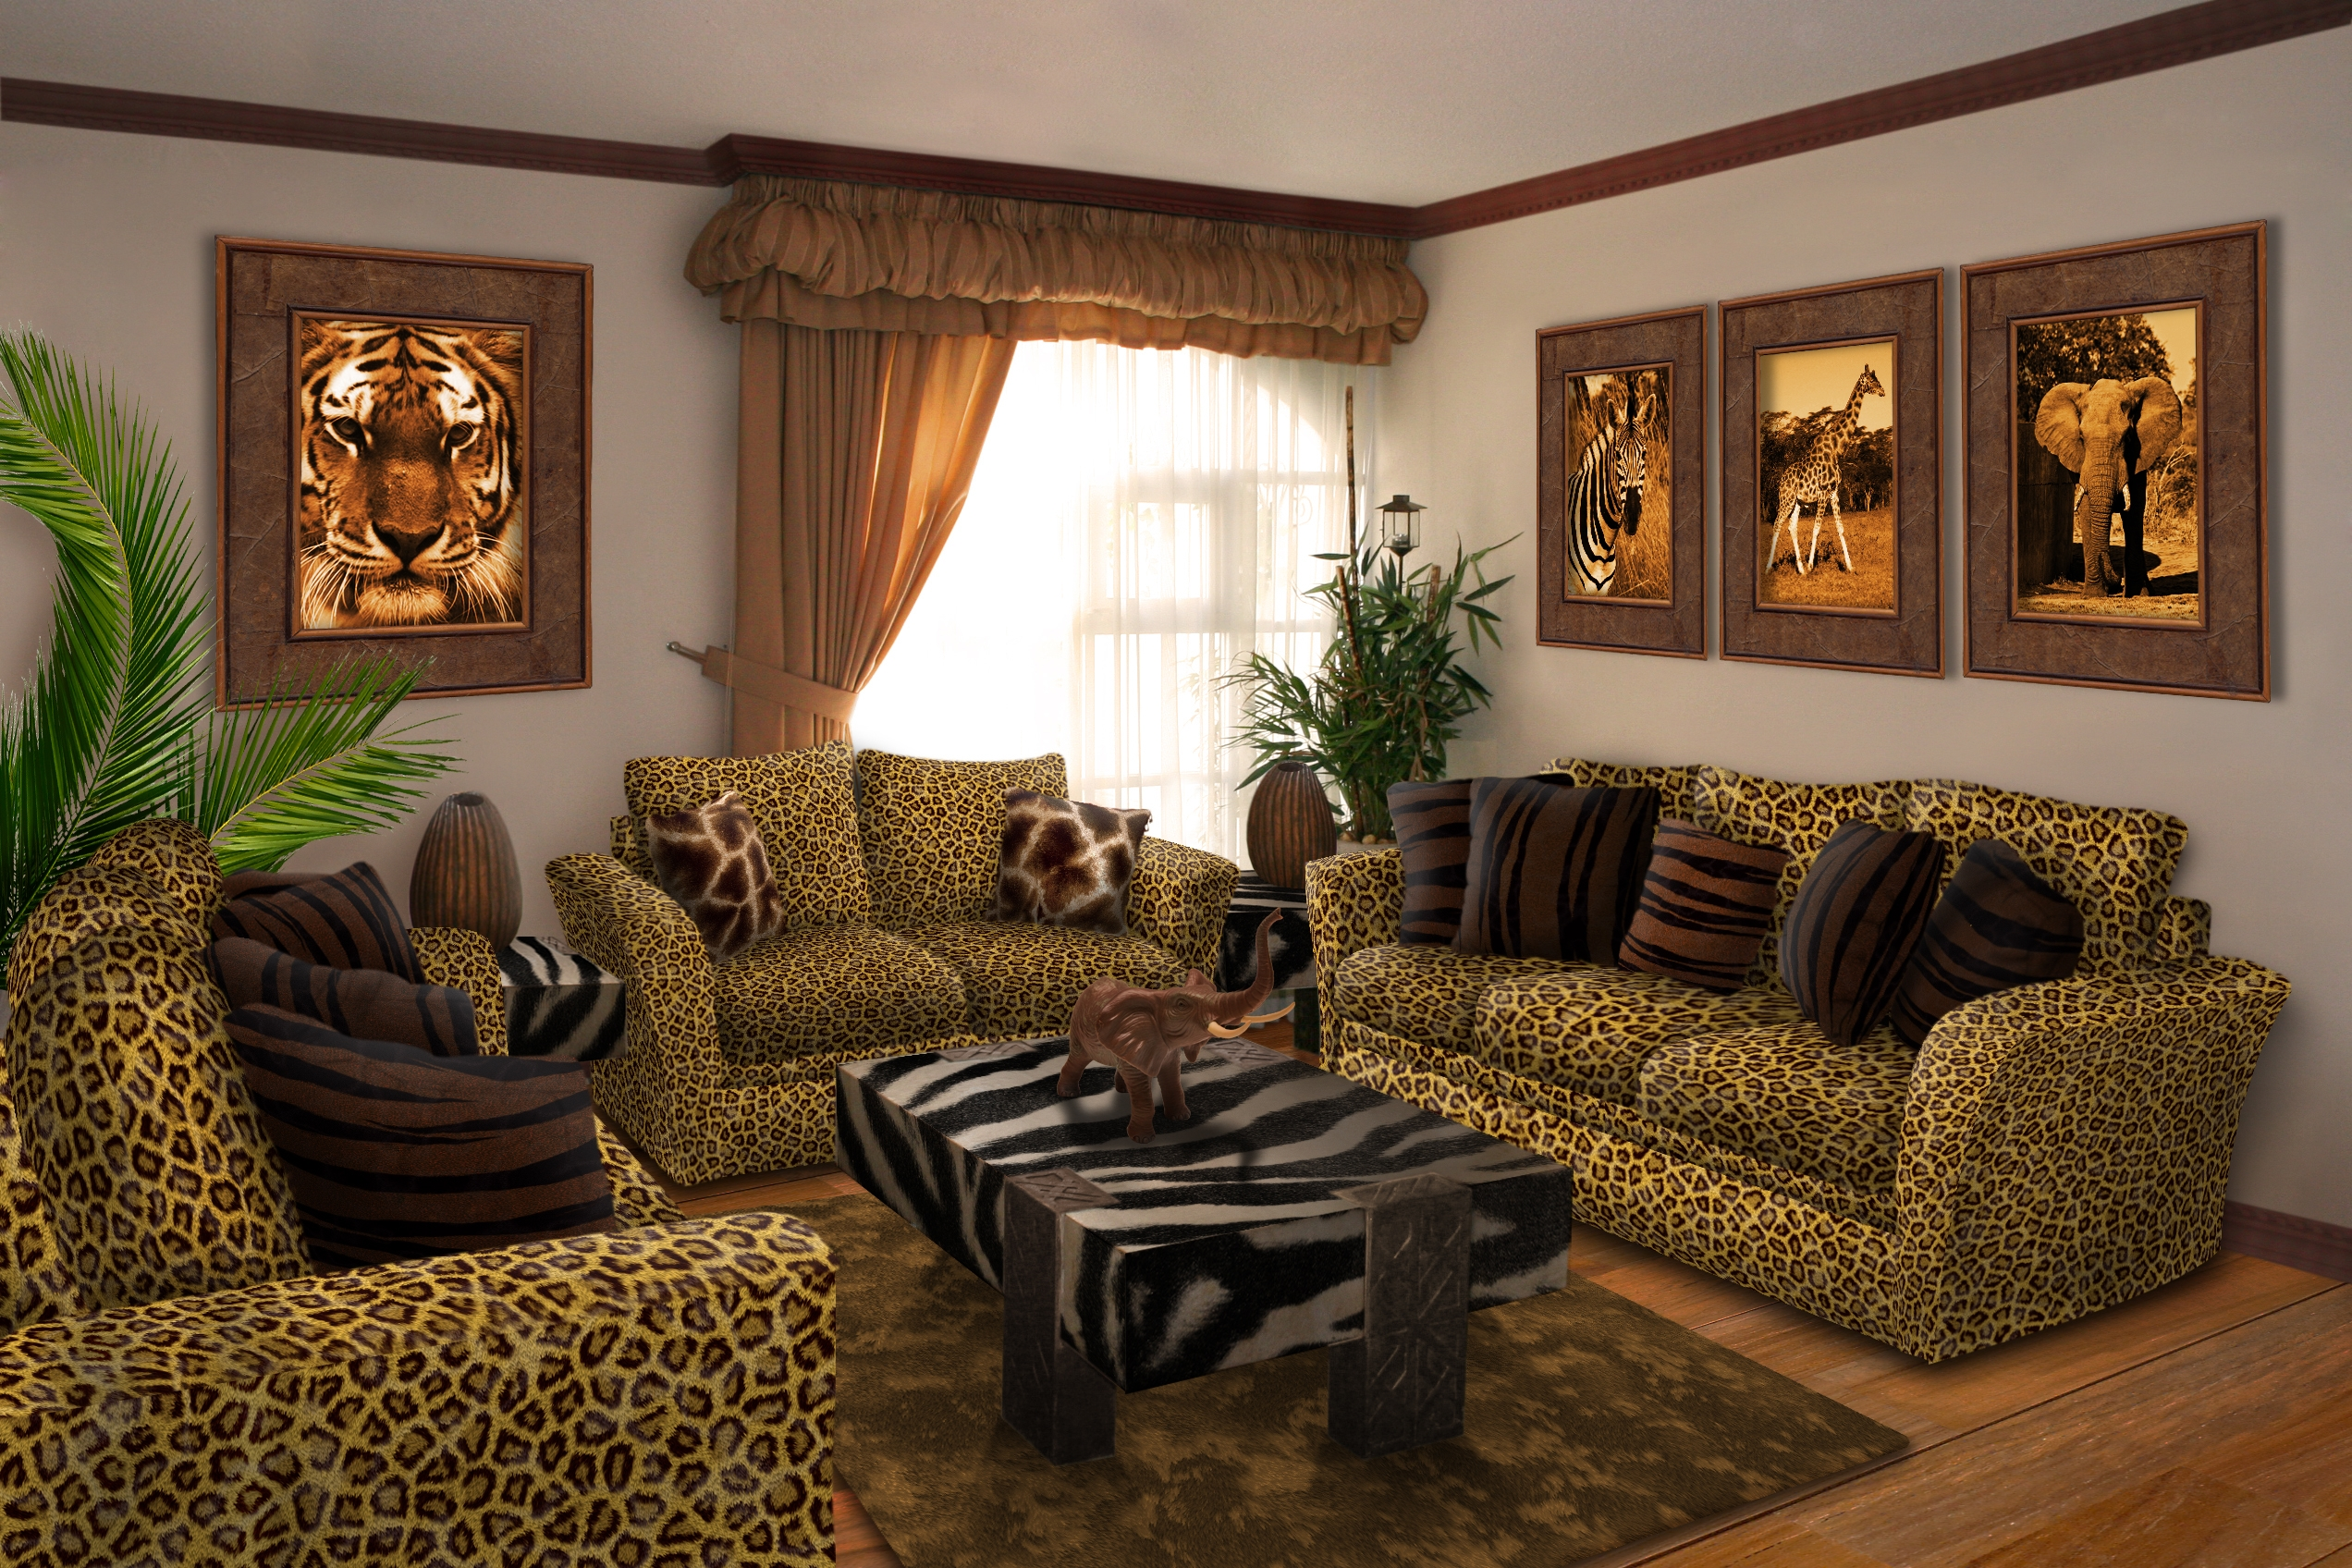 Safari Living Room Picture By Andrej2249 For Interior Transform Photoshop Contest Pxleyescom